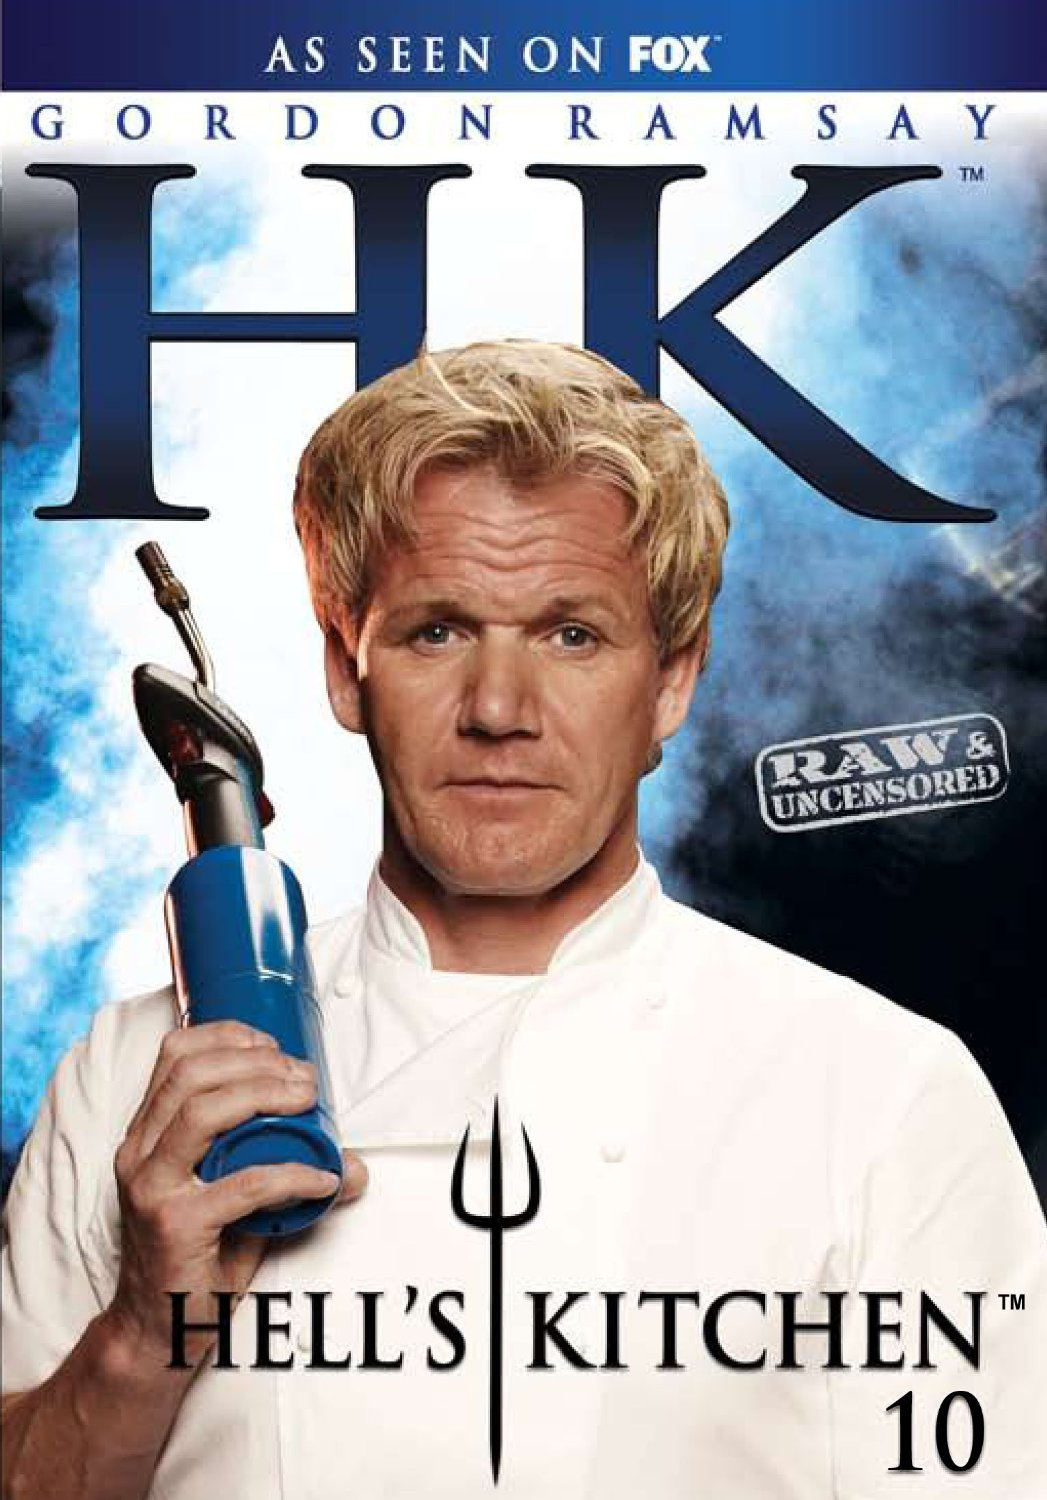 Hell39;s Kitchen Season 10 Series Ten Gordon Ramsay Region 1 New DVD